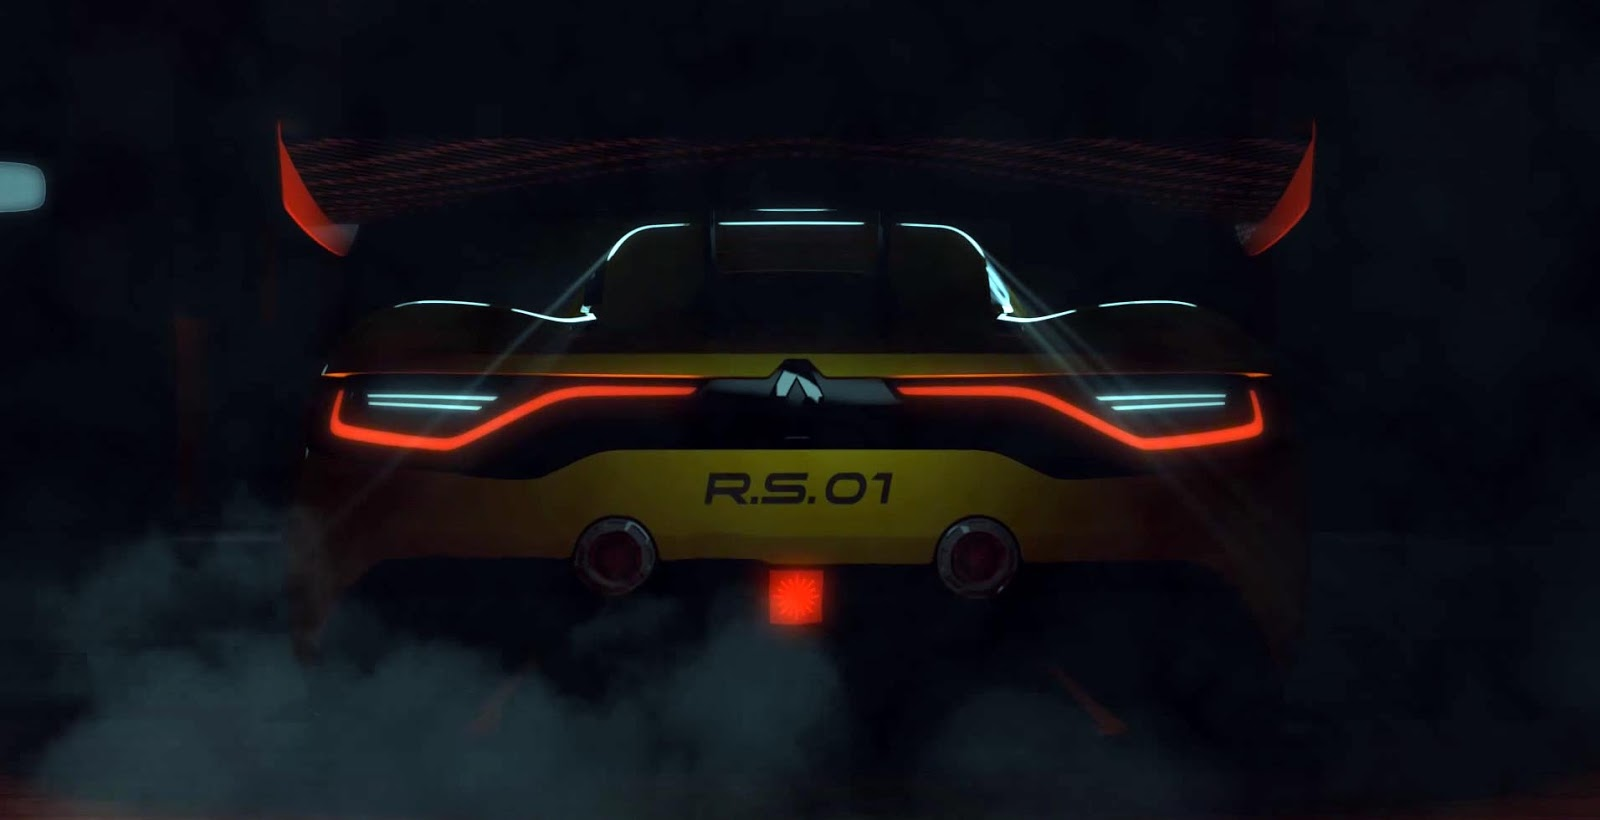 2018 Renault Sport RS 01 photo - 5